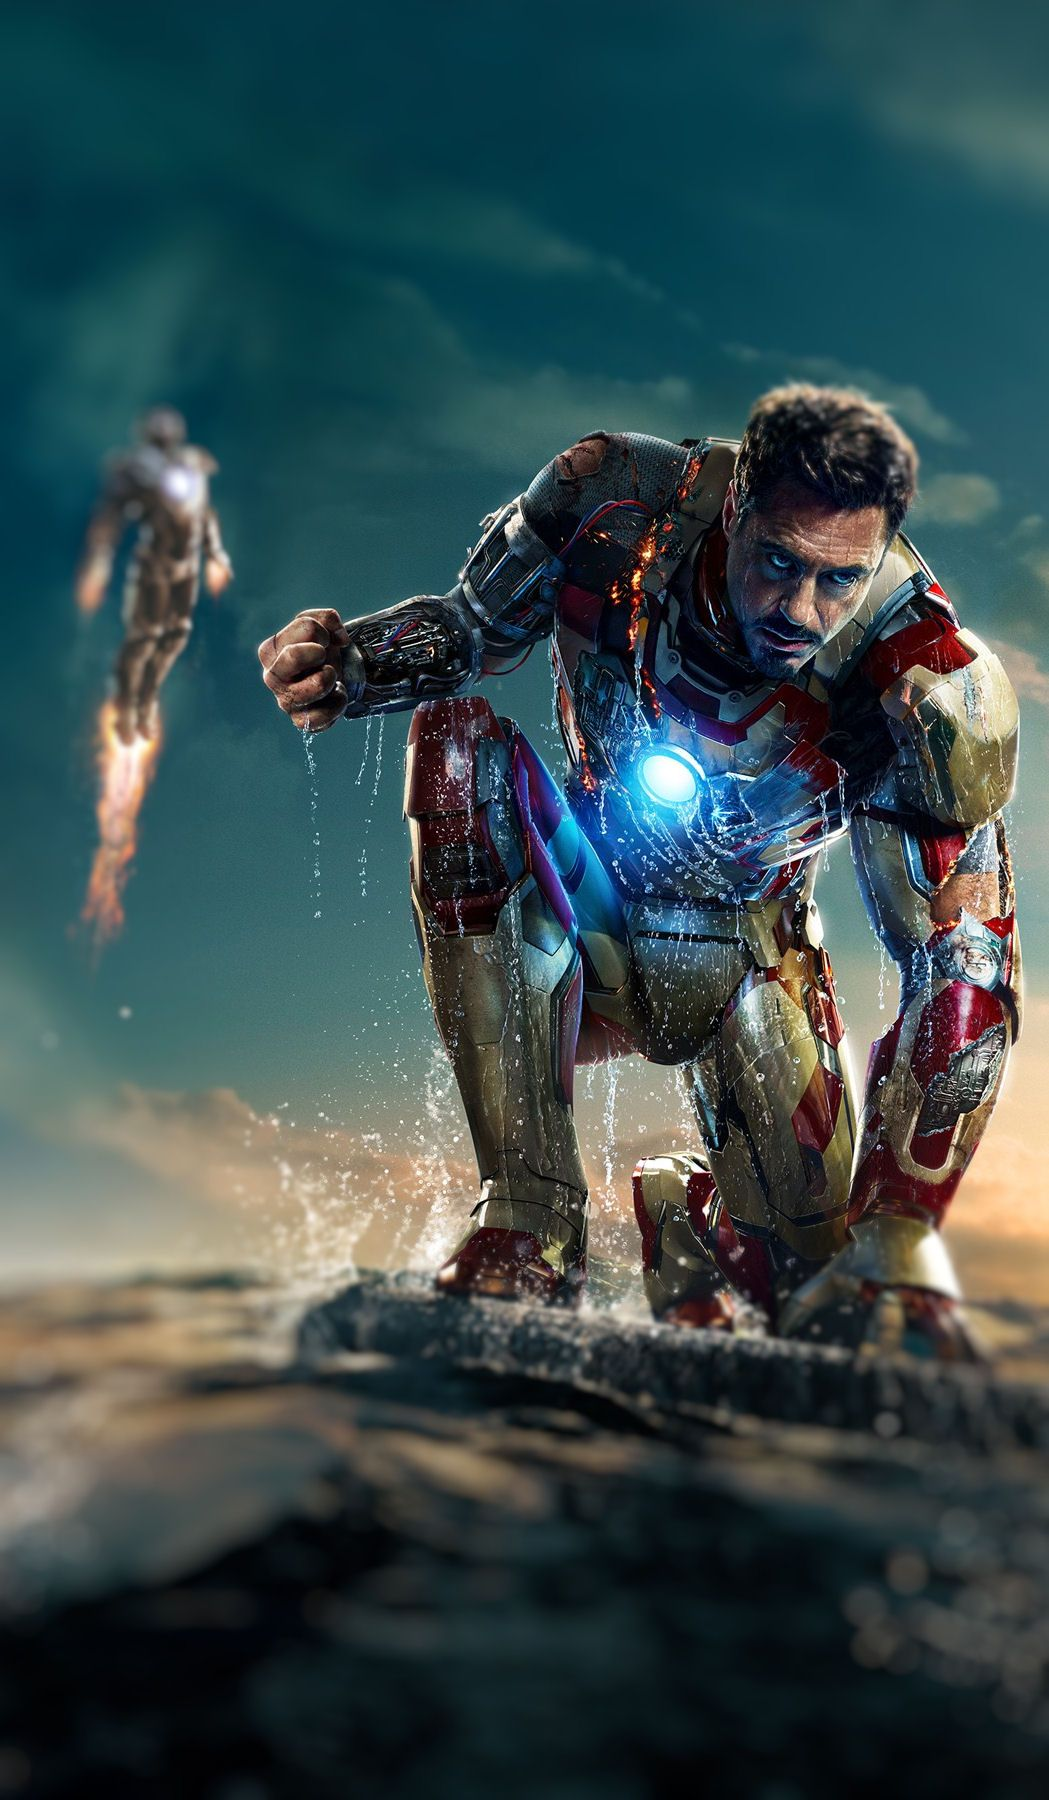 Pin By Abhijeet Ghogare On Phone Bling Iron Man Hd Wallpaper Iron Man Wallpaper Iron Man Hd